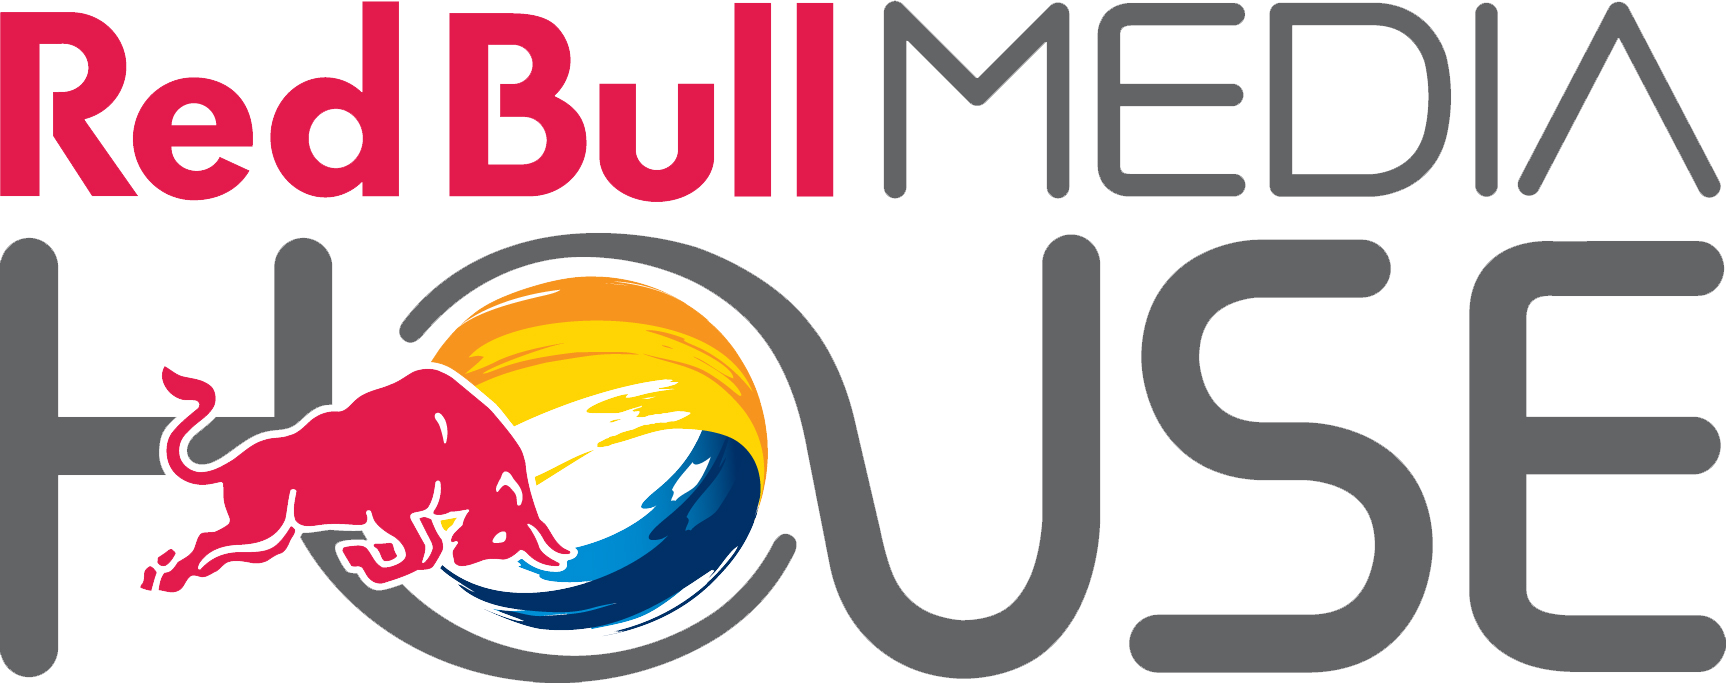 Red bull media house logo png. Mark leisher productions leave